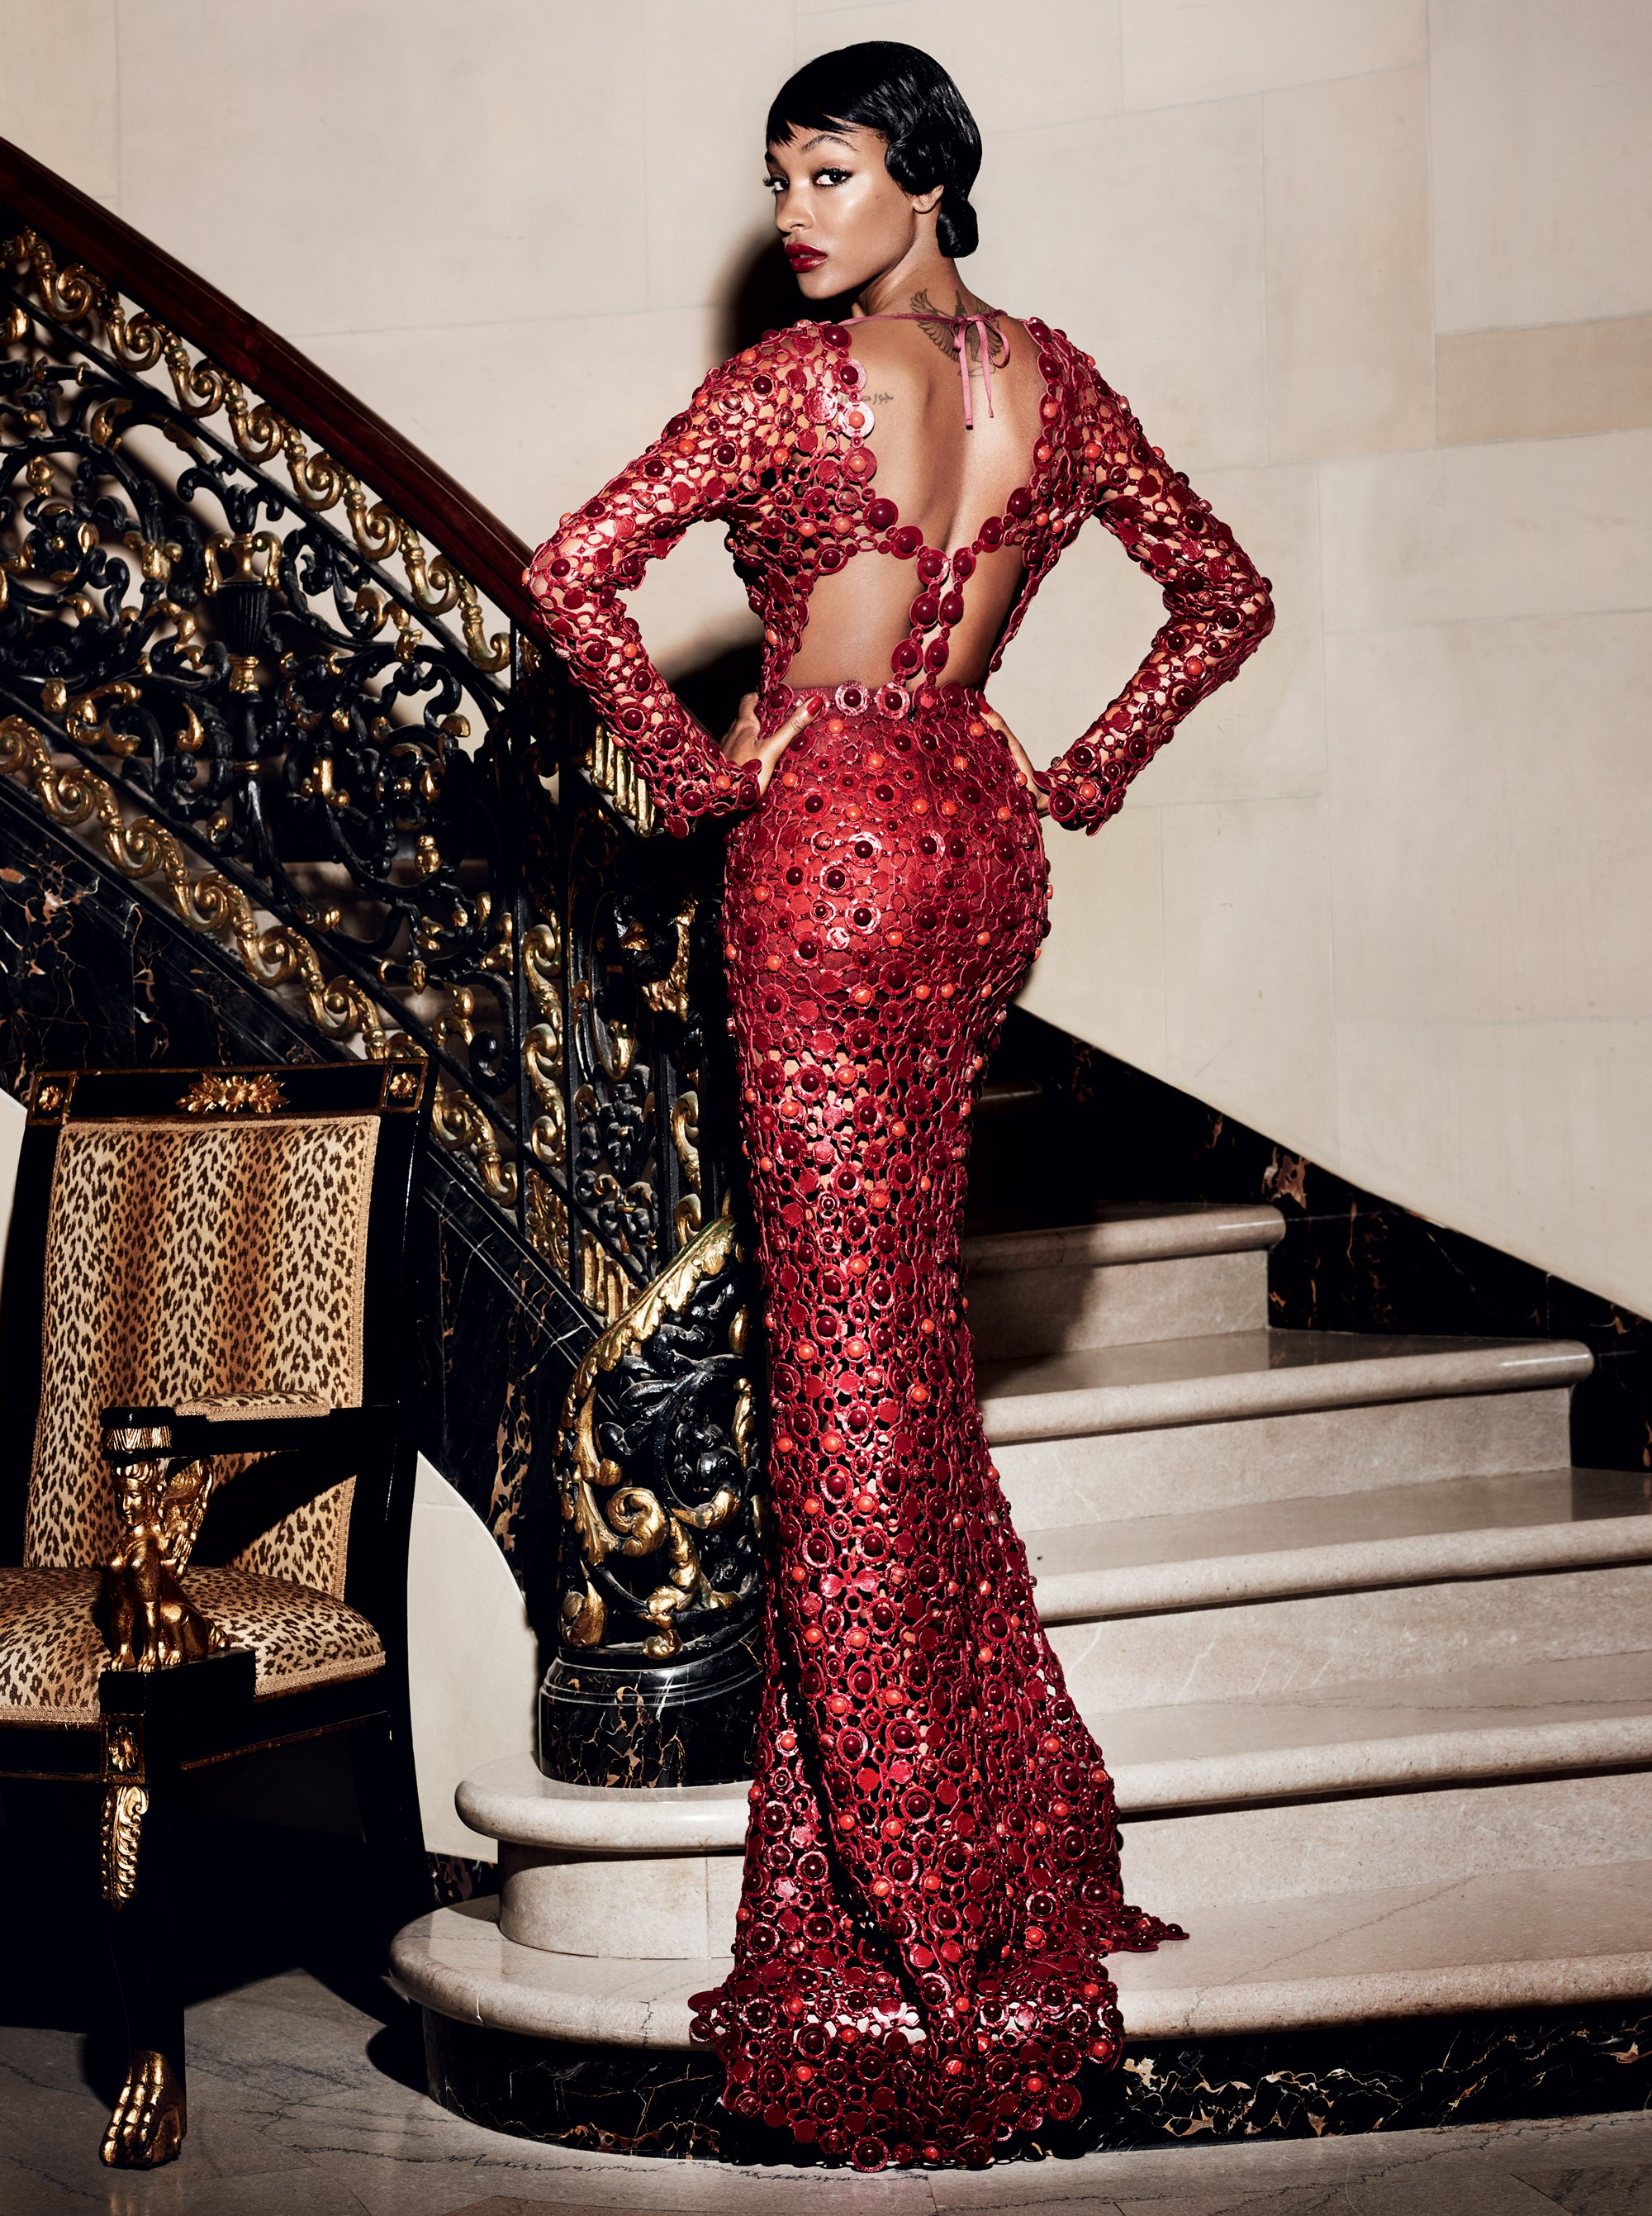 empire-cast-vogue-september-2015-02